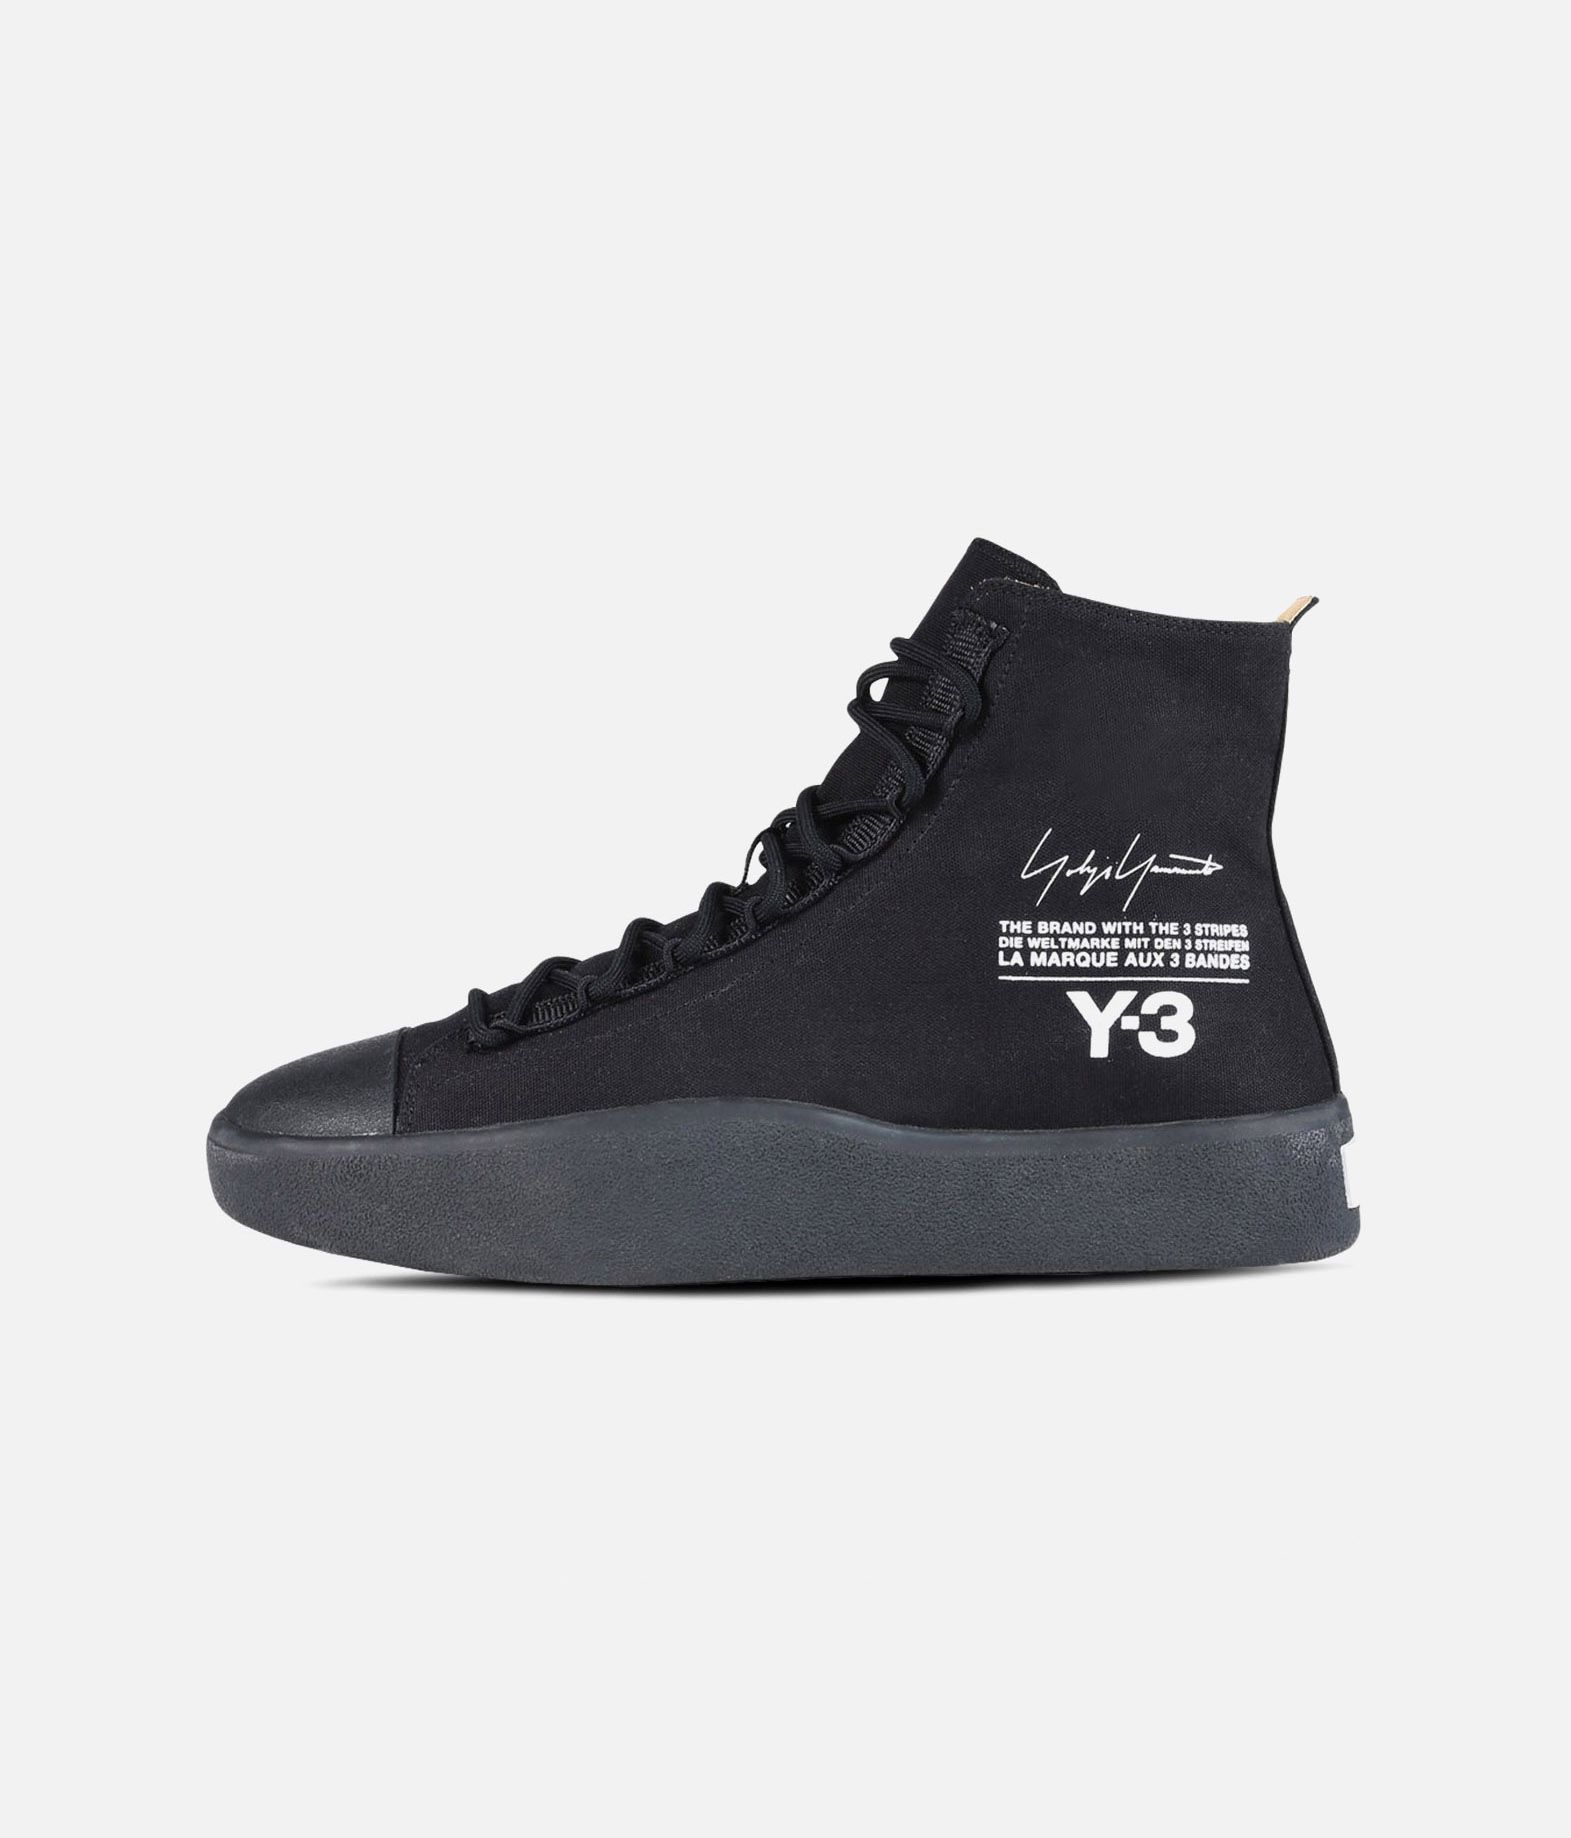 d0df484da3fea ... Y-3 Y-3 BASHYO High-top sneakers E f ...